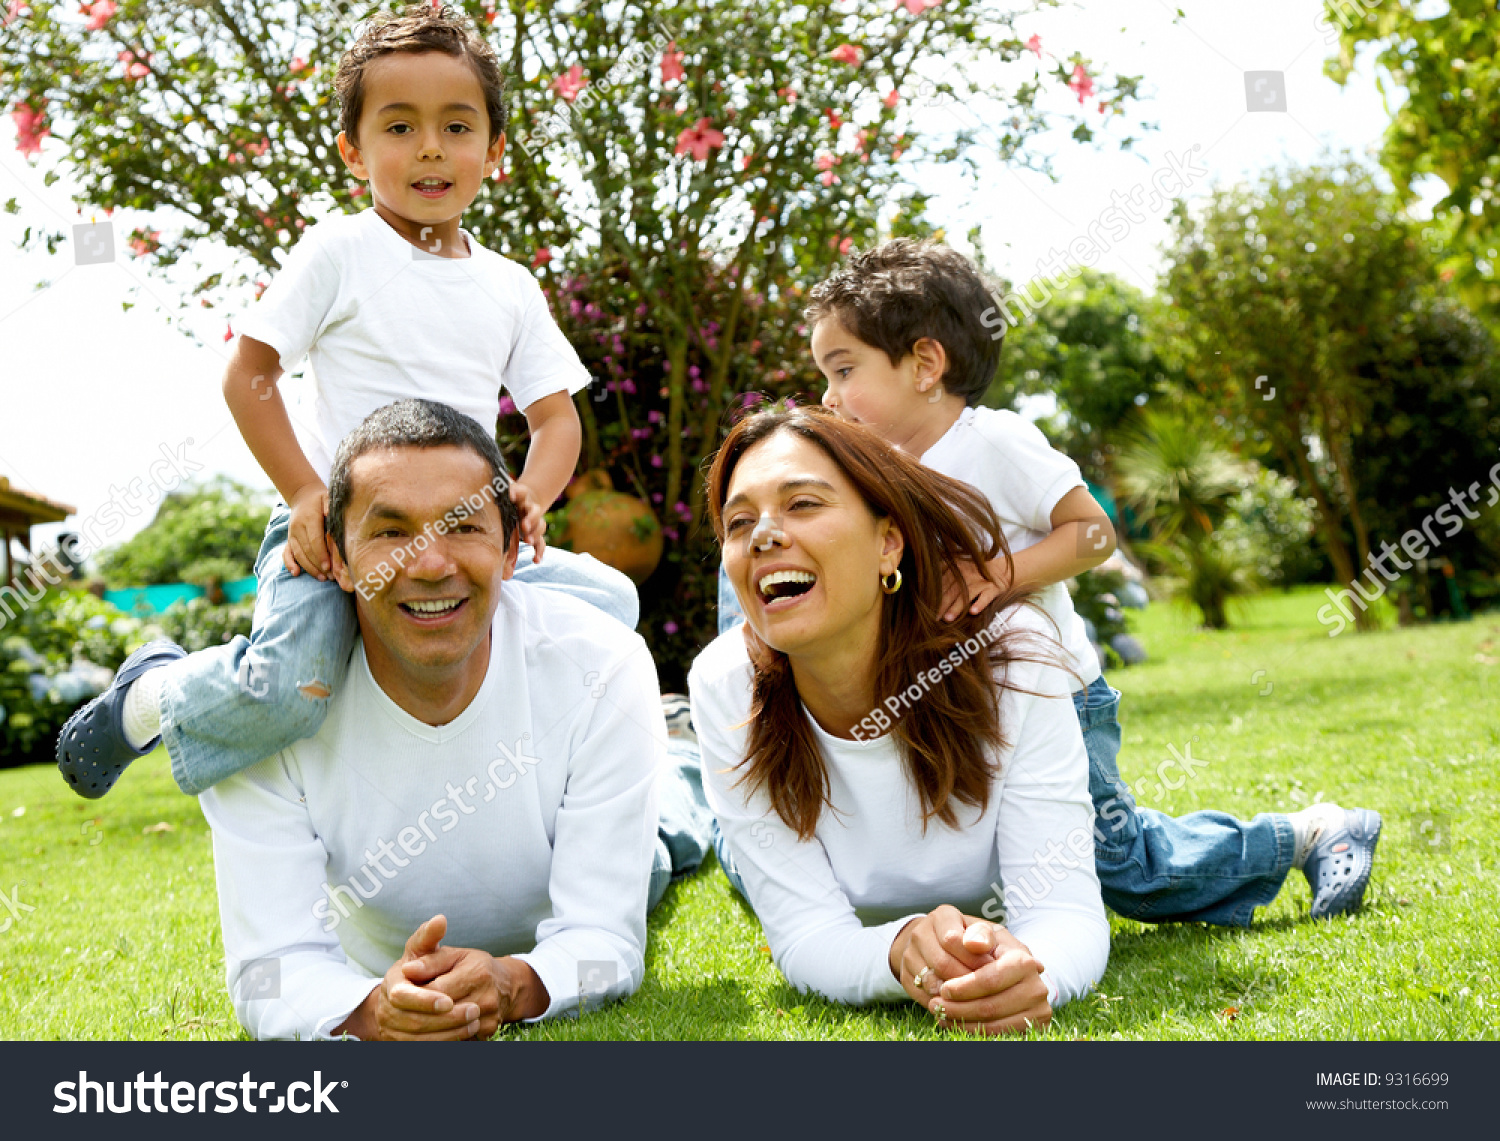 essay family portrait Find out how learning your family's health history can help you discover your genetic heritage and risks, and guide you in making healthy environment and lifestyle choices learn about how to obtain and create a family health history.